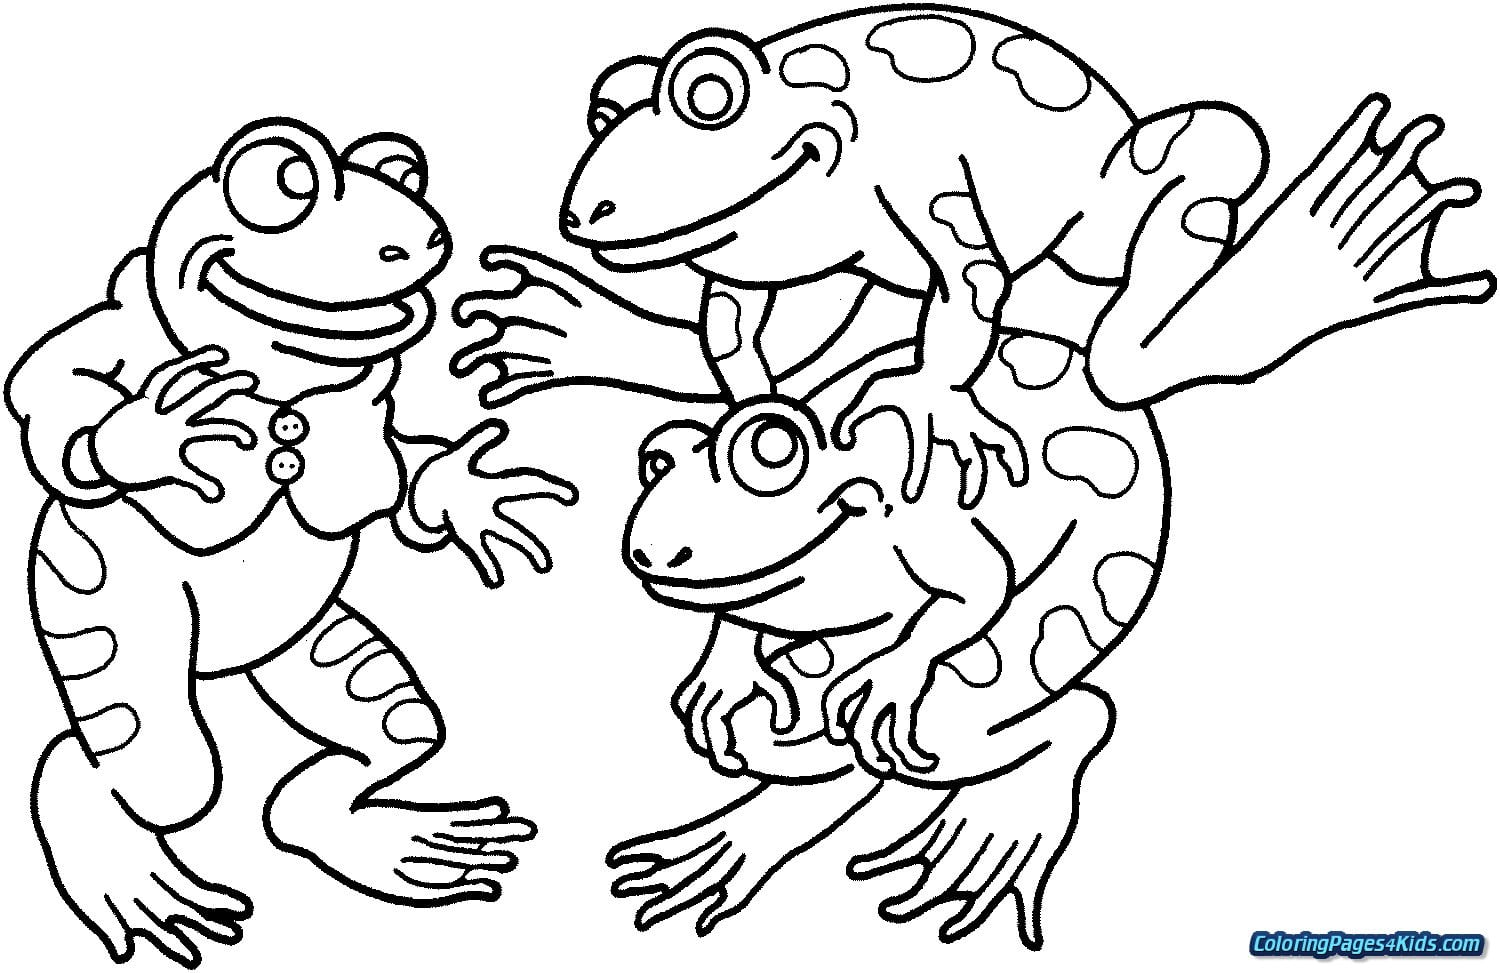 Medquit » Frog And Toad Coloring Pages